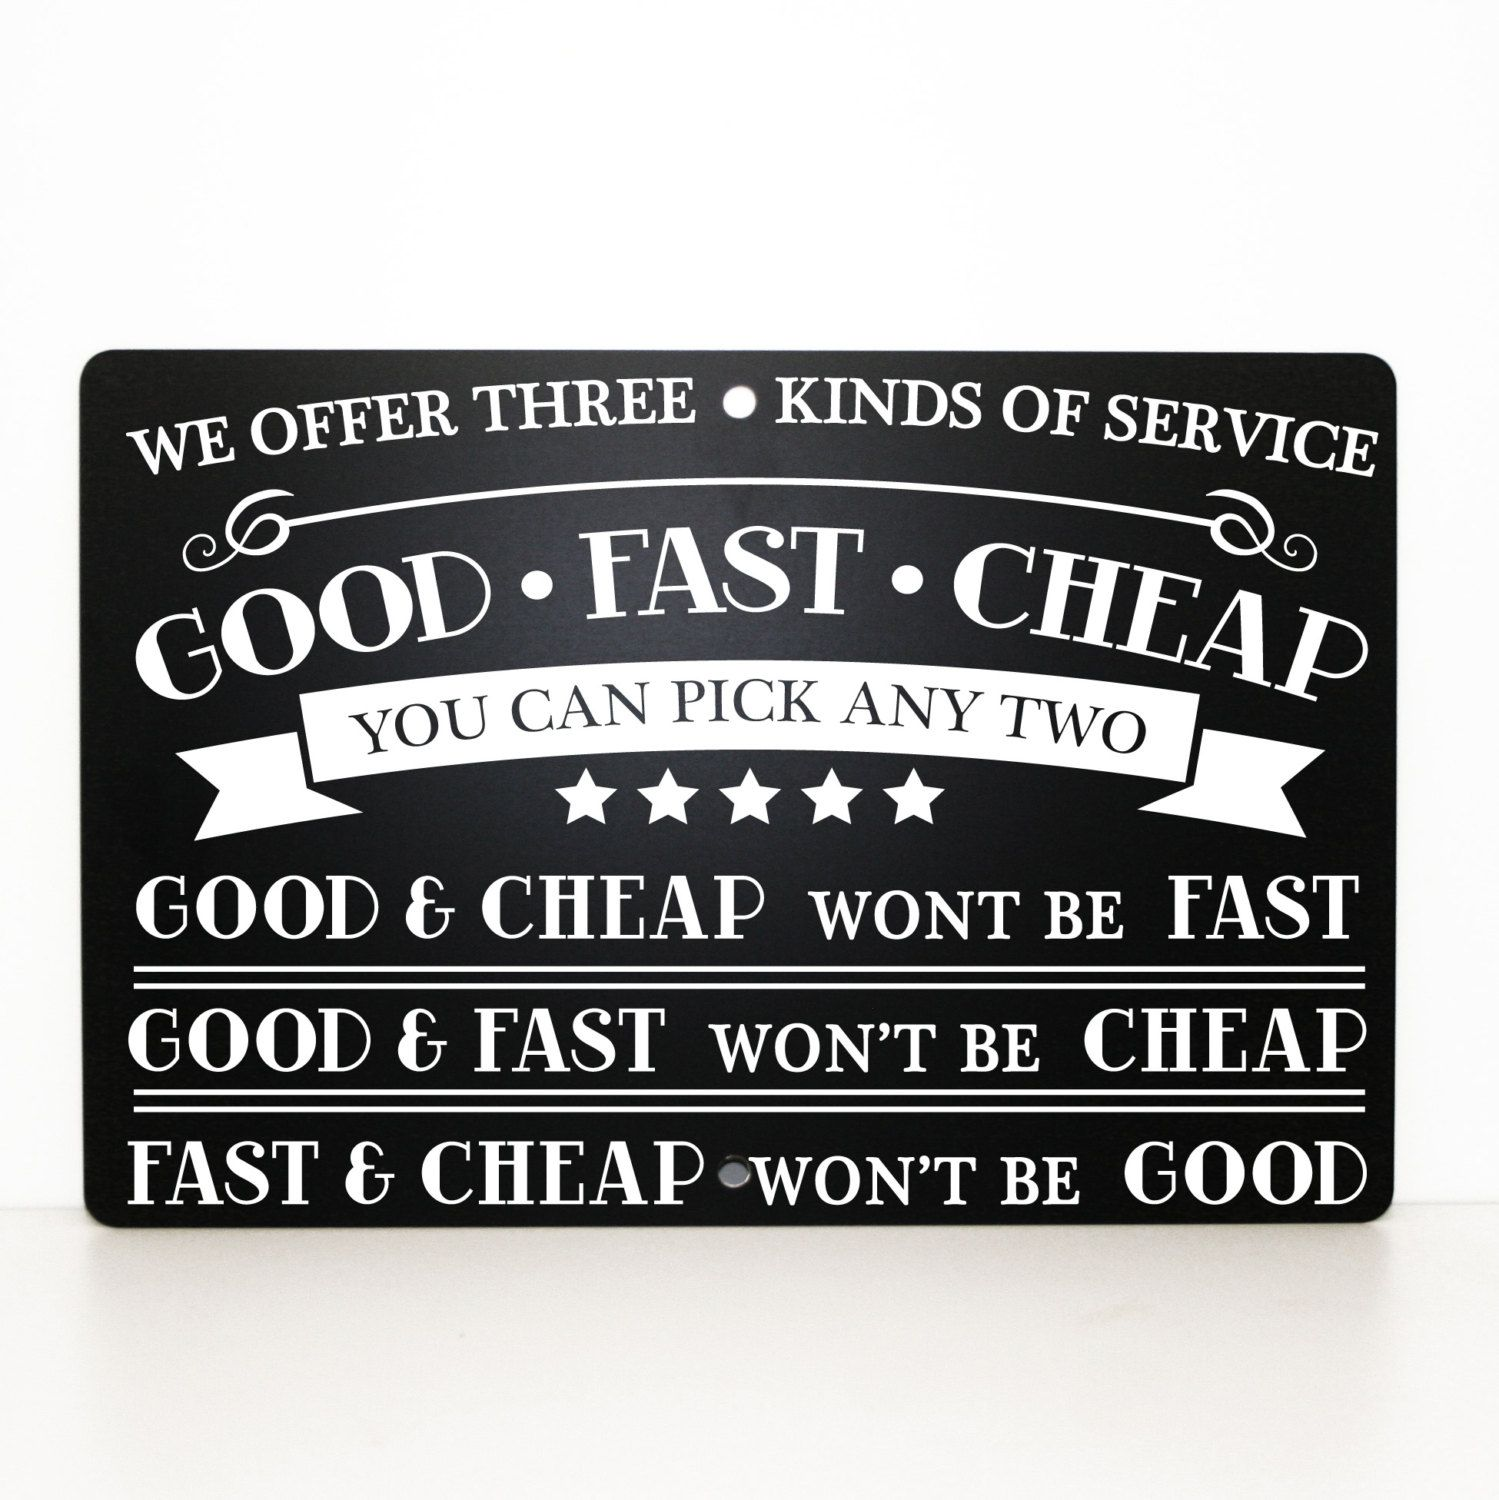 GOOD, FAST, CHEAP: Pick Any Two – A Simple Business Axiom Can Lead to Better IT Systems